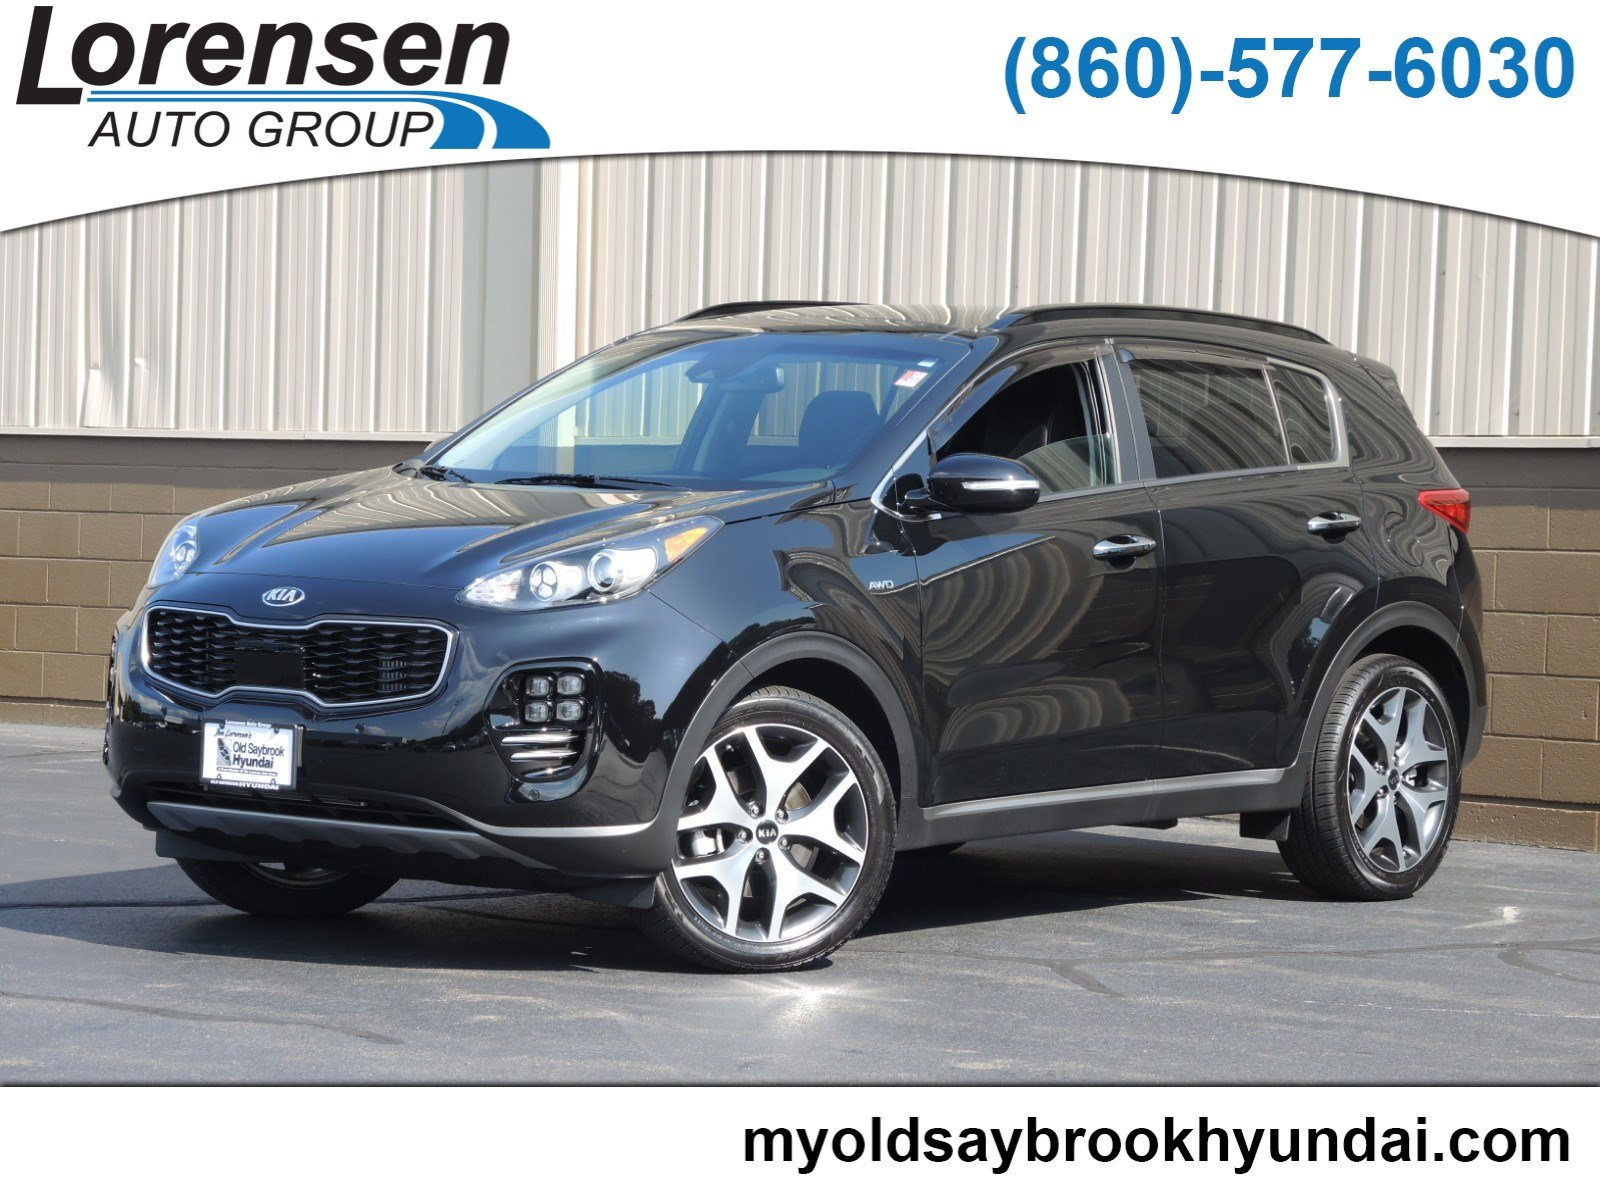 Pre-Owned 2019 Kia Sportage SX Turbo